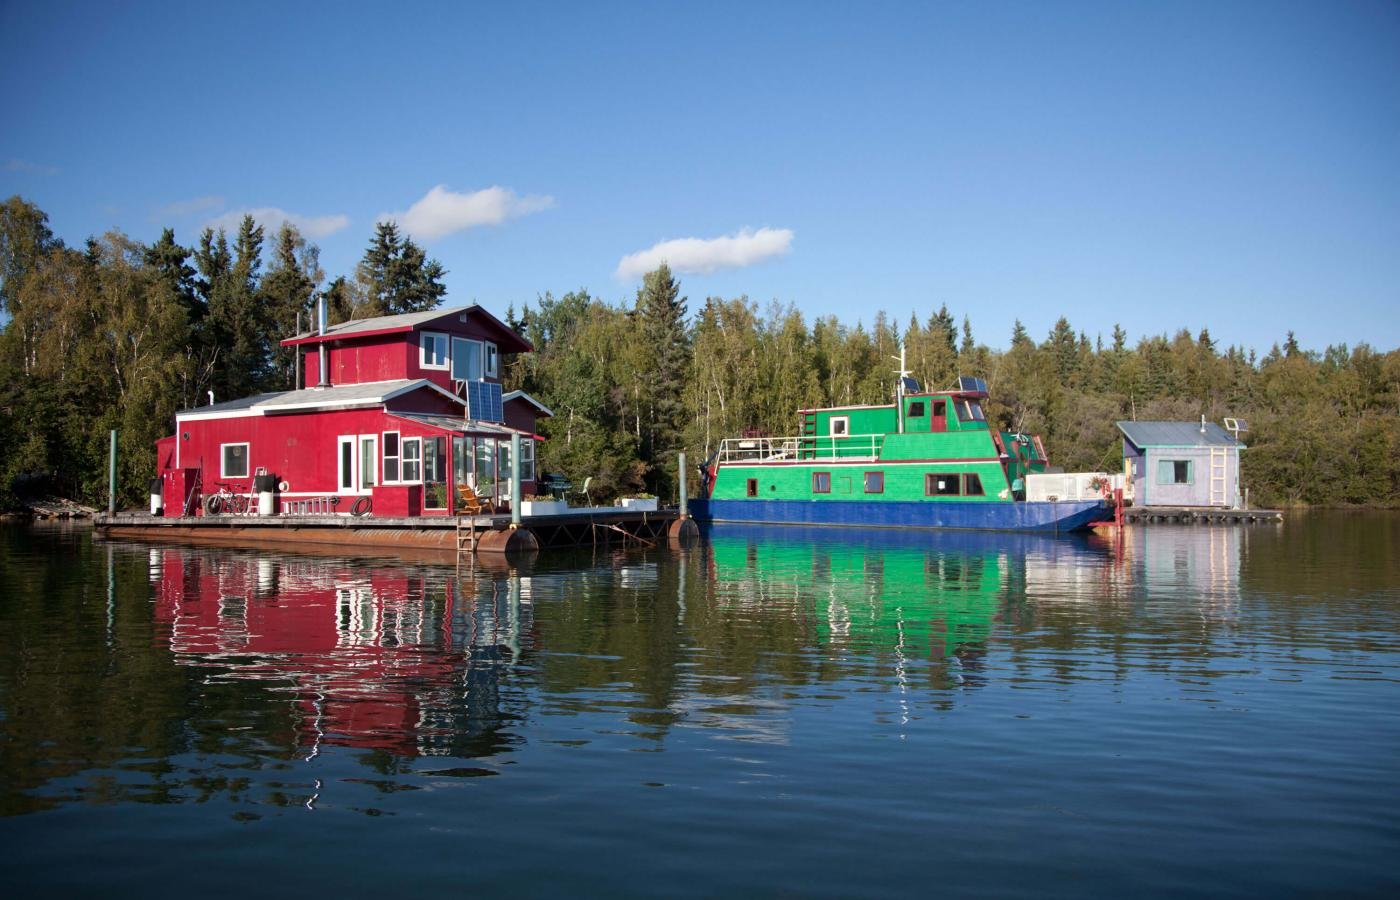 Houseboats floating in 'Back Bay', Yellowknife, NWT